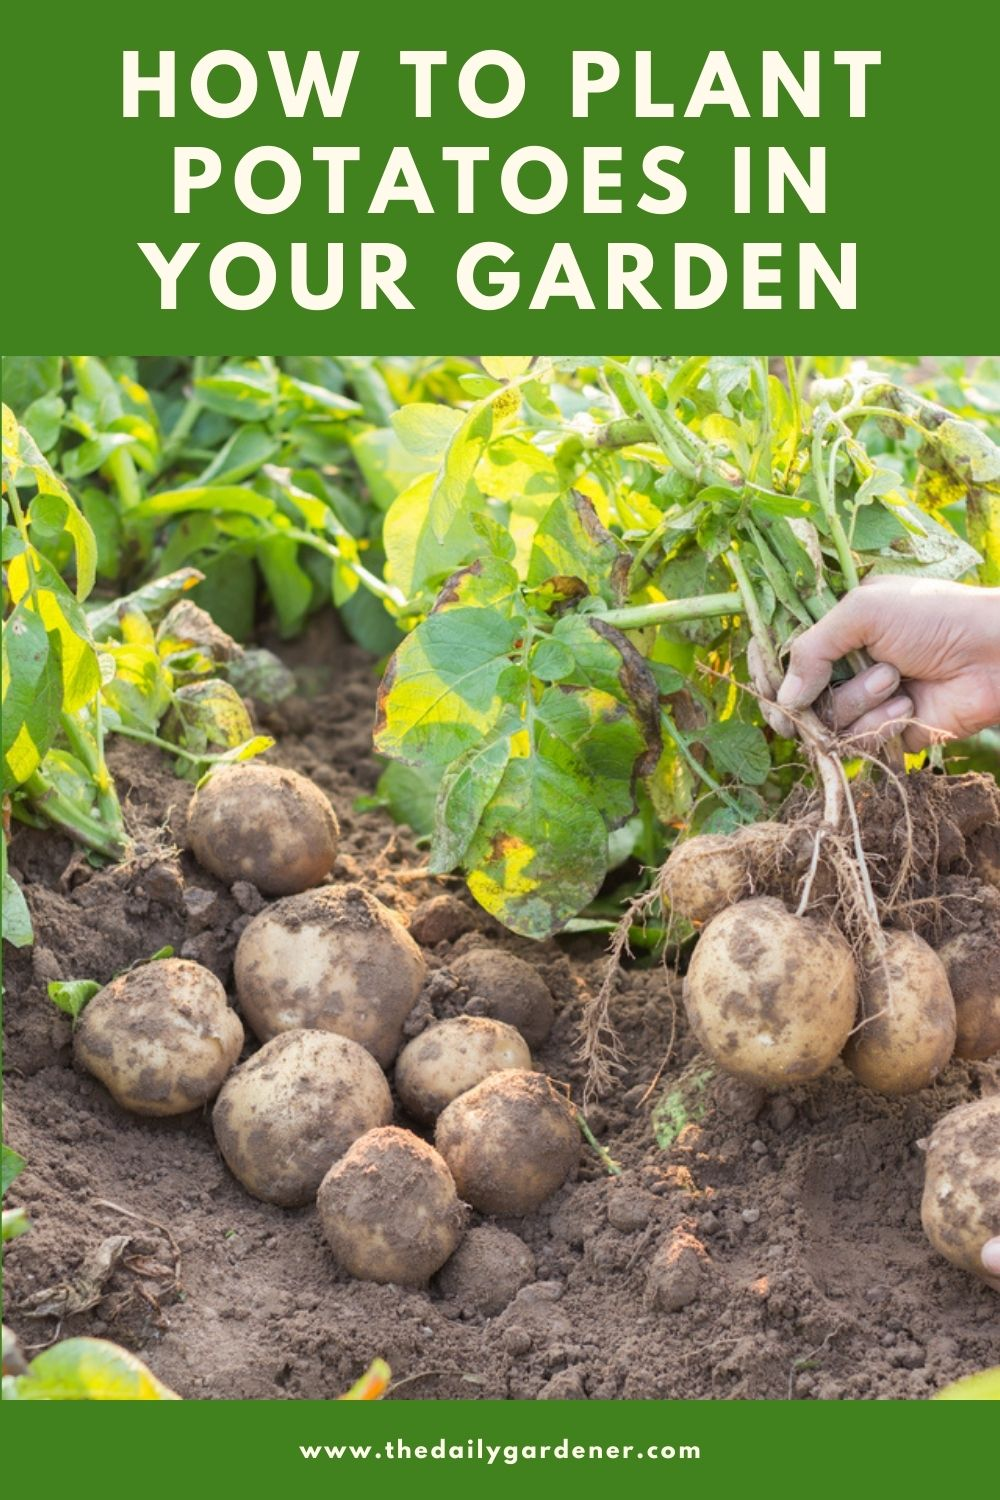 How to Plant Potatoes in Your Garden (Tricks to Care!) 1